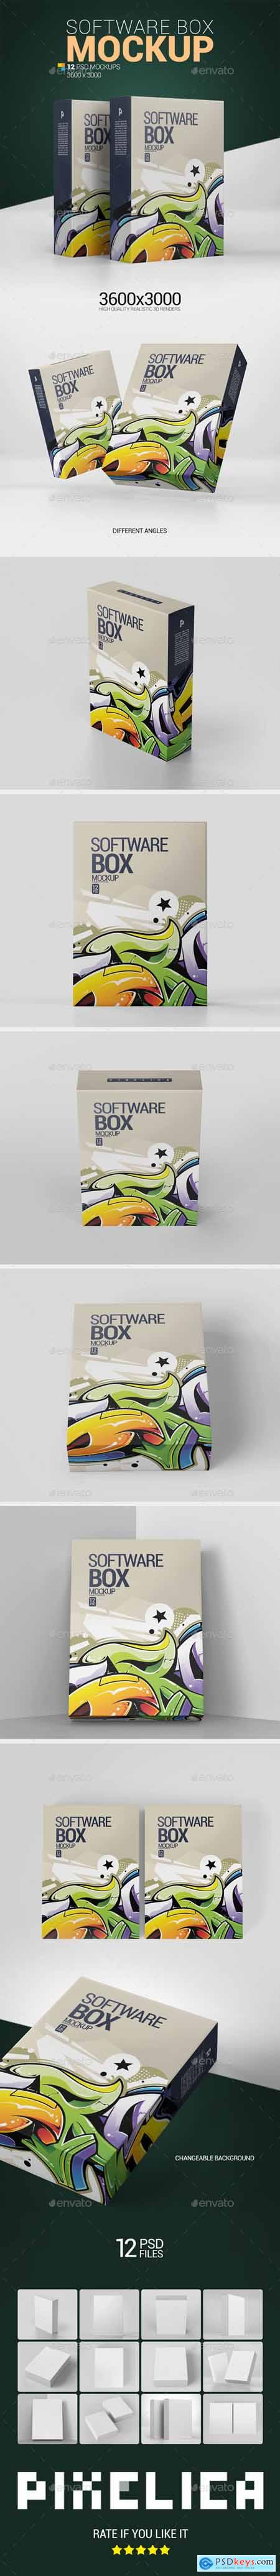 Software Box Mockup 25568629